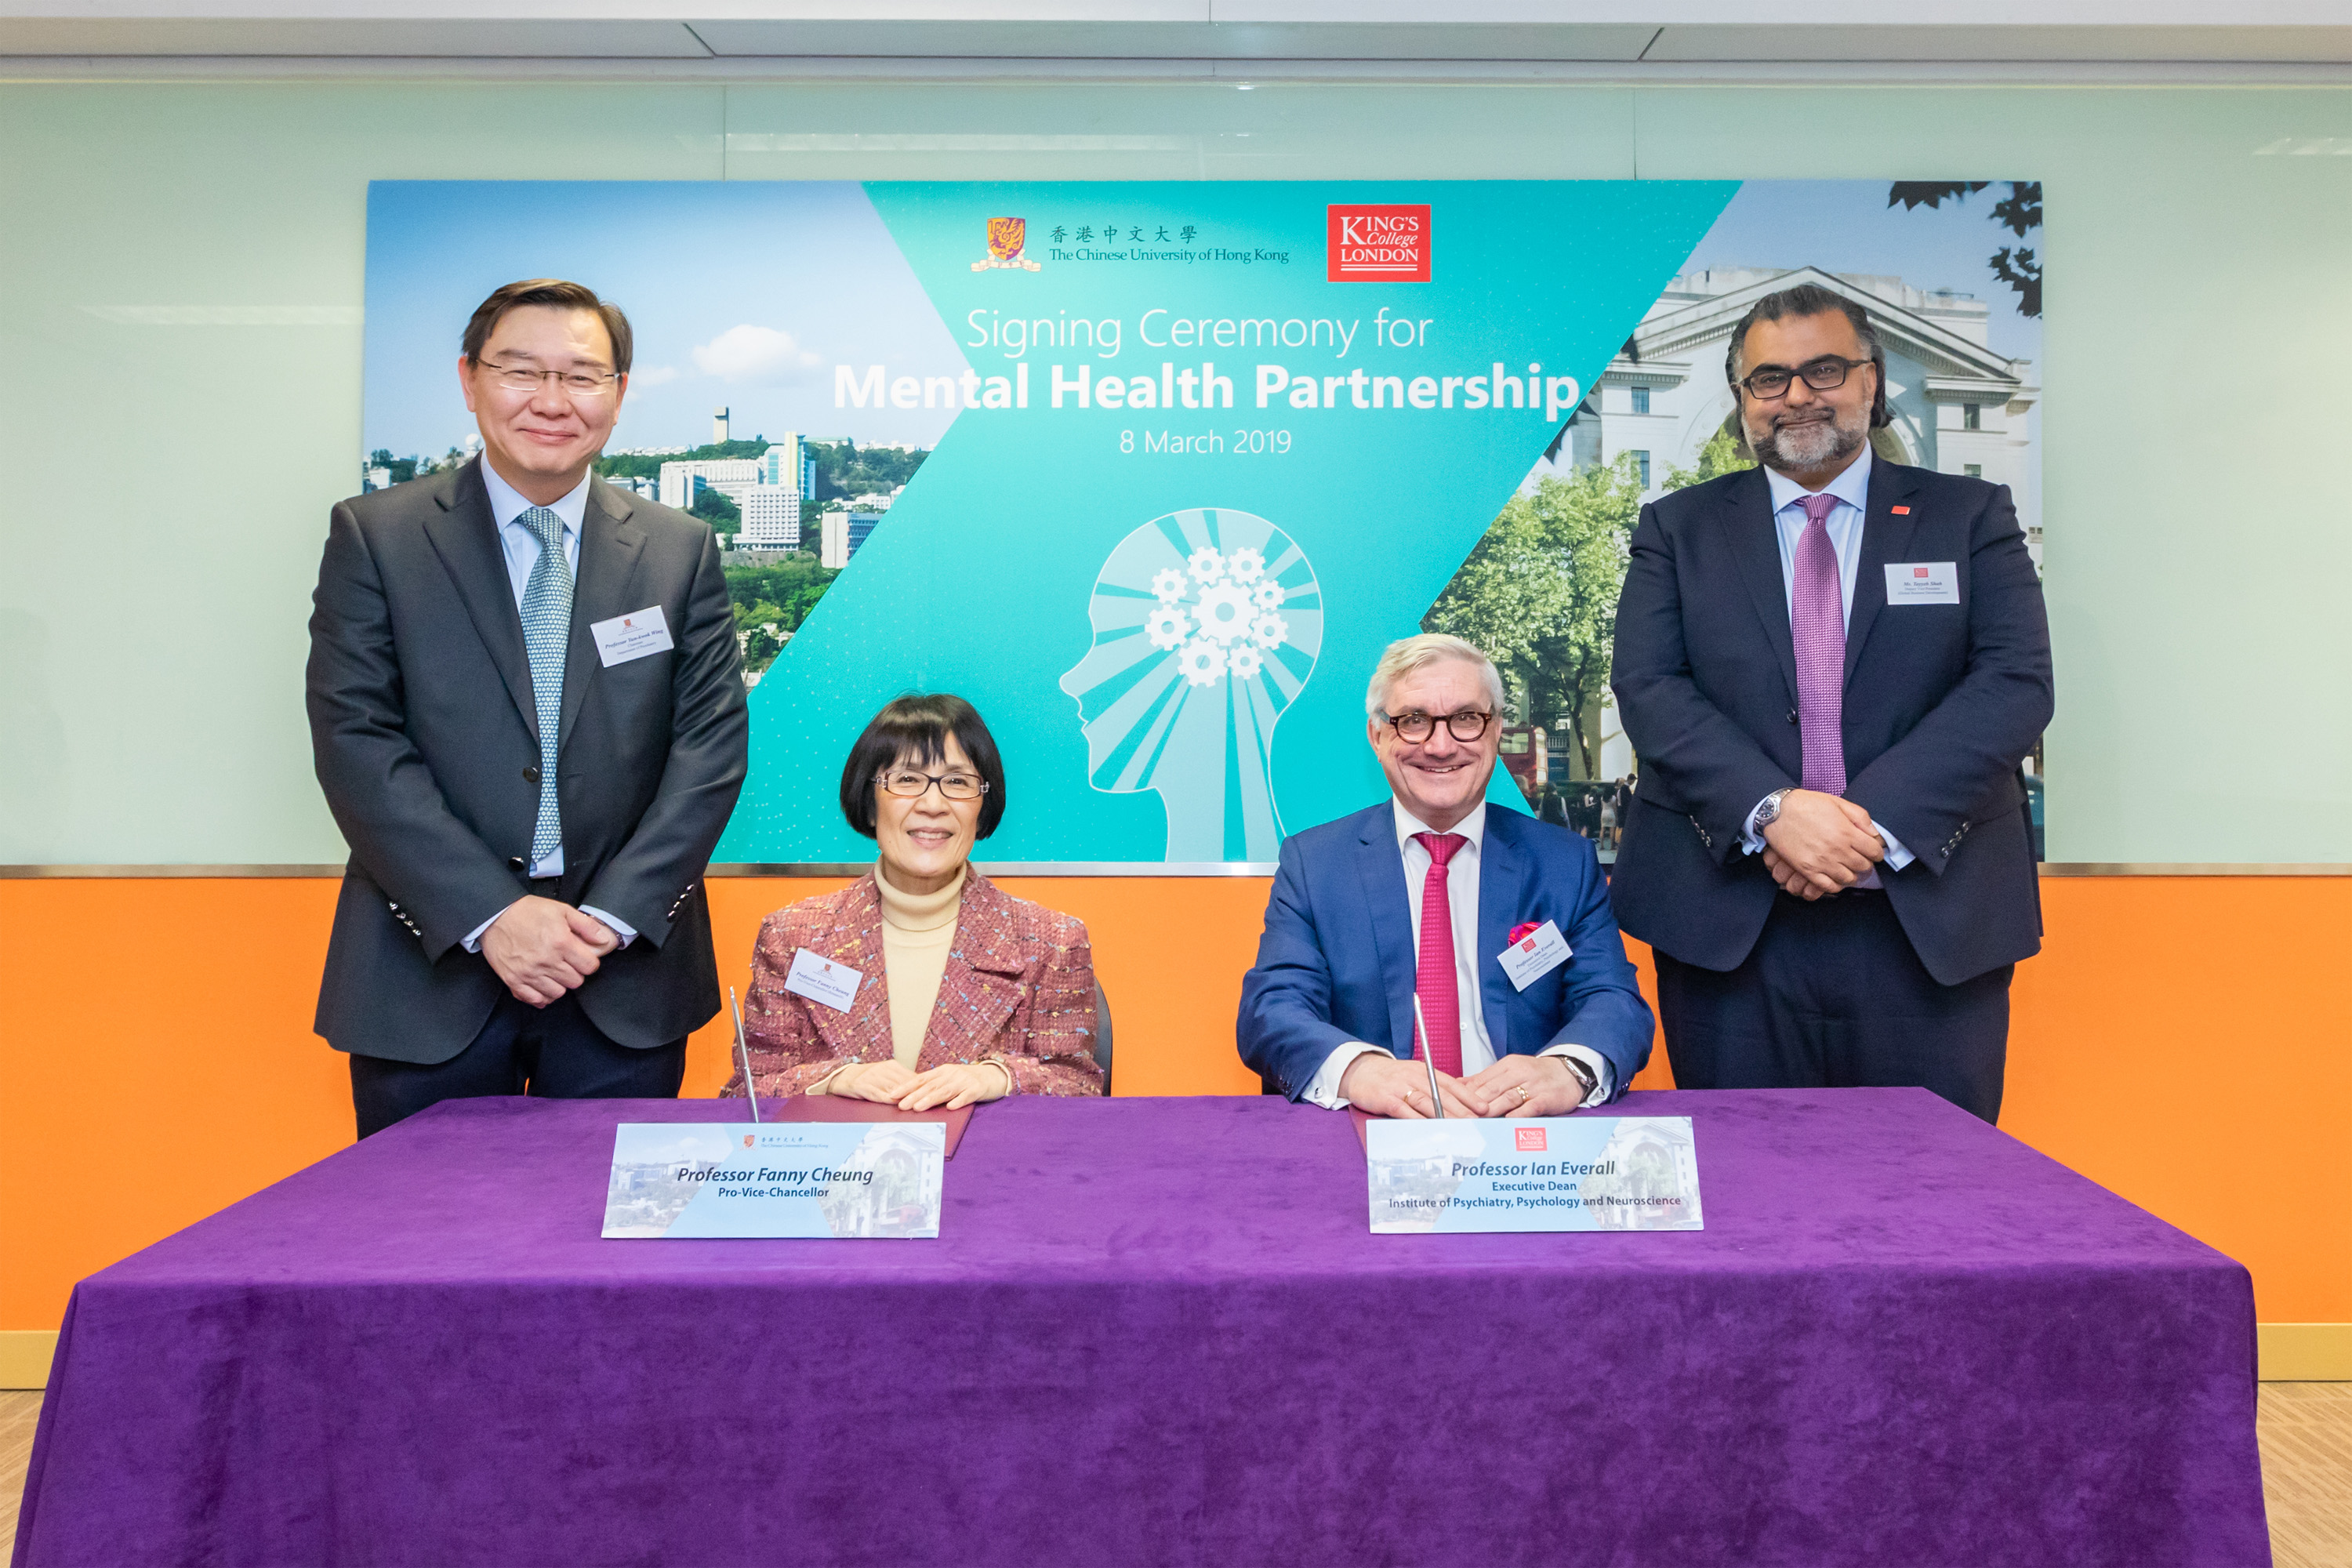 CUHK and KCL join hands to advance mental health care in Hong Kong by adopting novel technologies. [From left: Prof. Yun Kwok WING, Chairman of the Department of Psychiatry, Faculty of Medicine at CUHK; Prof. Fanny CHEUNG, Pro-Vice-Chancellor of CUHK; Prof. Ian EVERALL, Executive Dean of the Institute of Psychiatry, Psychology, and Neuroscience at KCL; and Mr. Tayyeb SHAH, Deputy Vice President (Global Business Development) of KCL.]